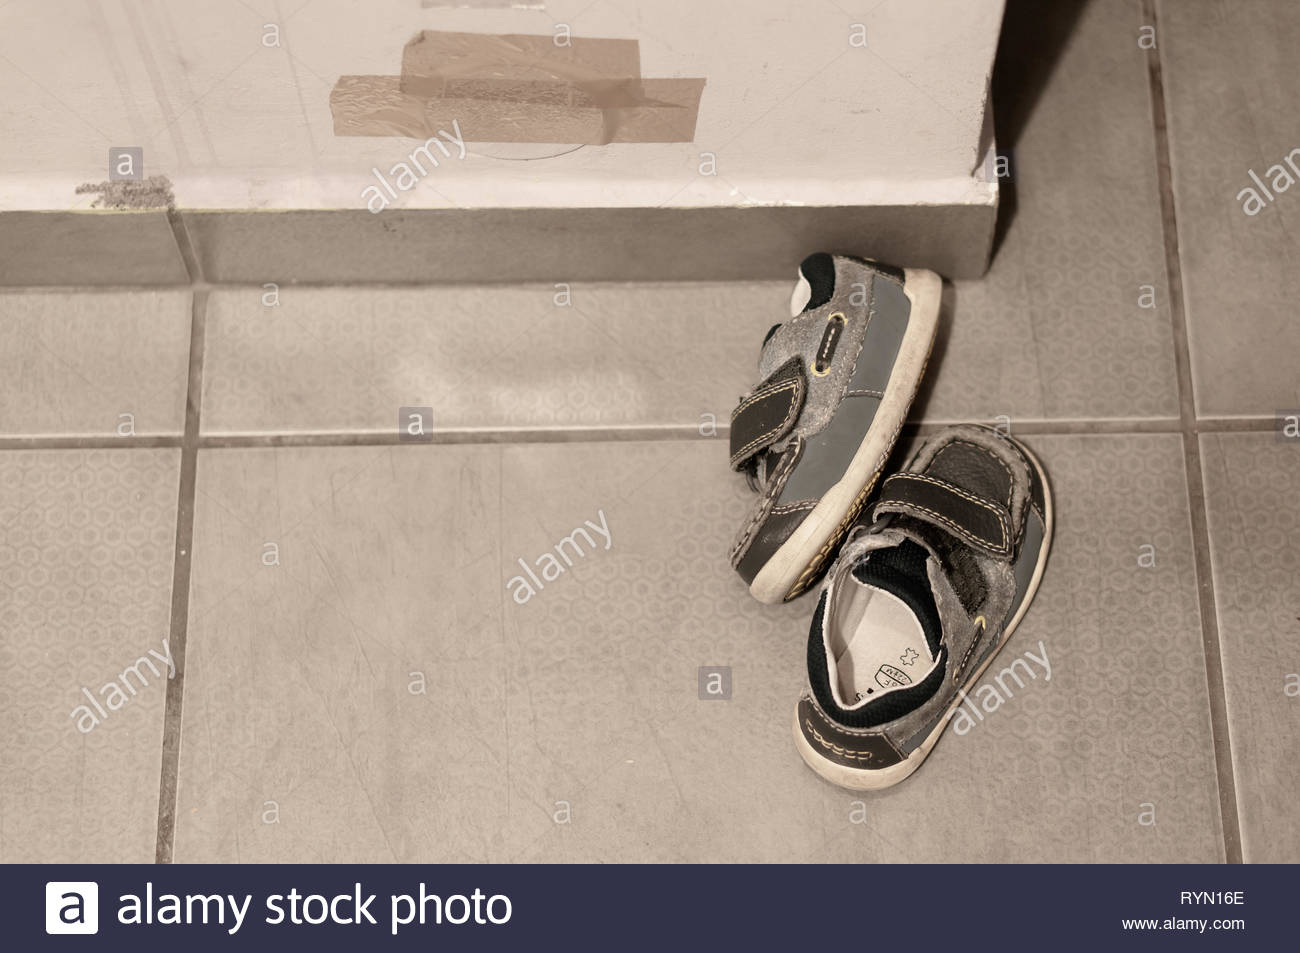 Poznan, Poland - March 8, 2019: Pair of small leather child shoes laying on a tile floor next to a wall. Stock Photo